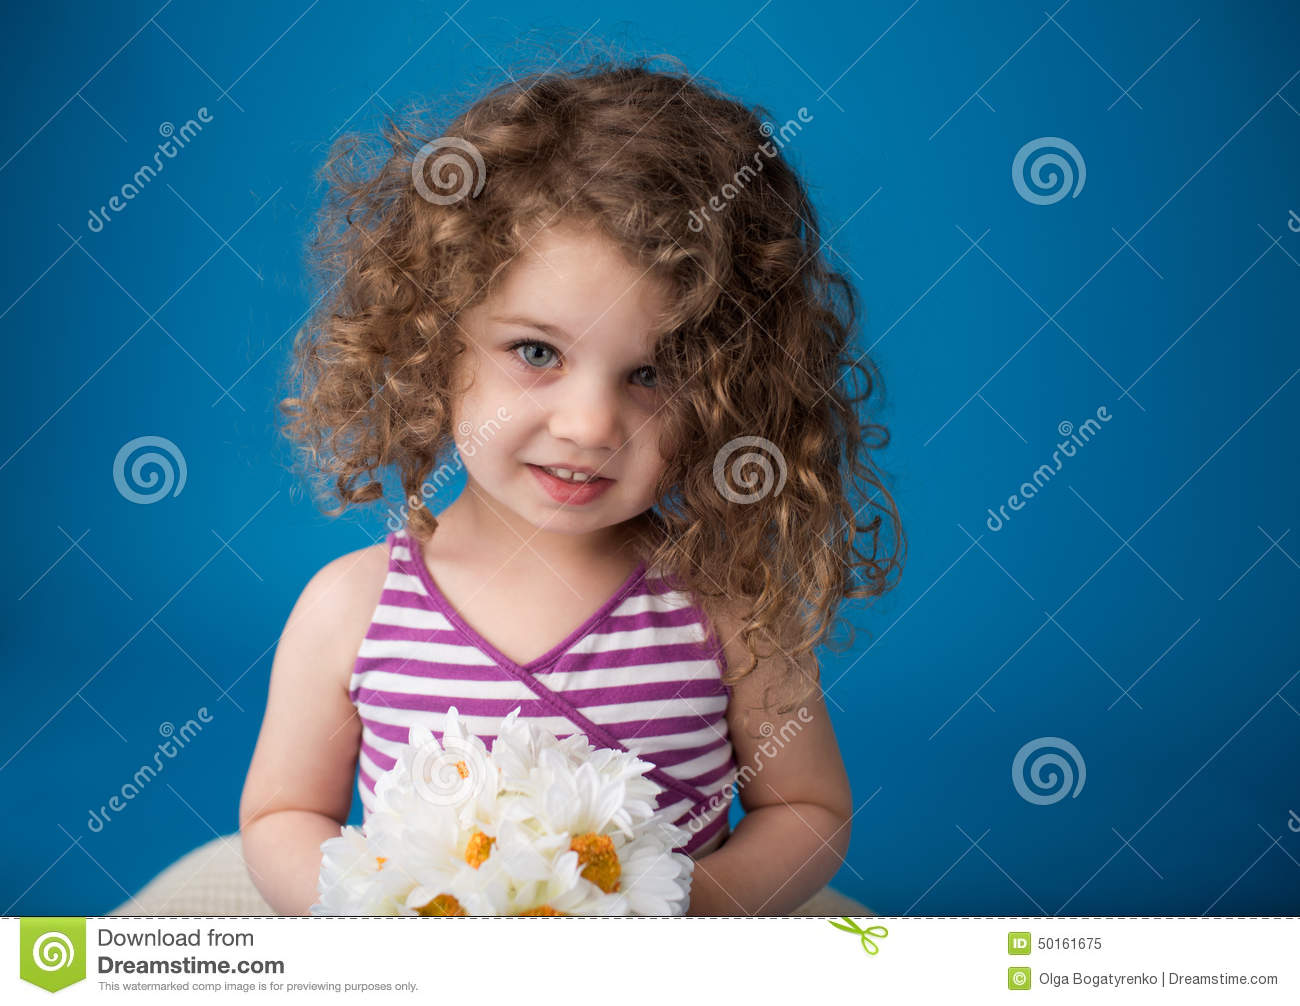 Happy Smiling Laughing Child Girl With Curly Hair Stock Image